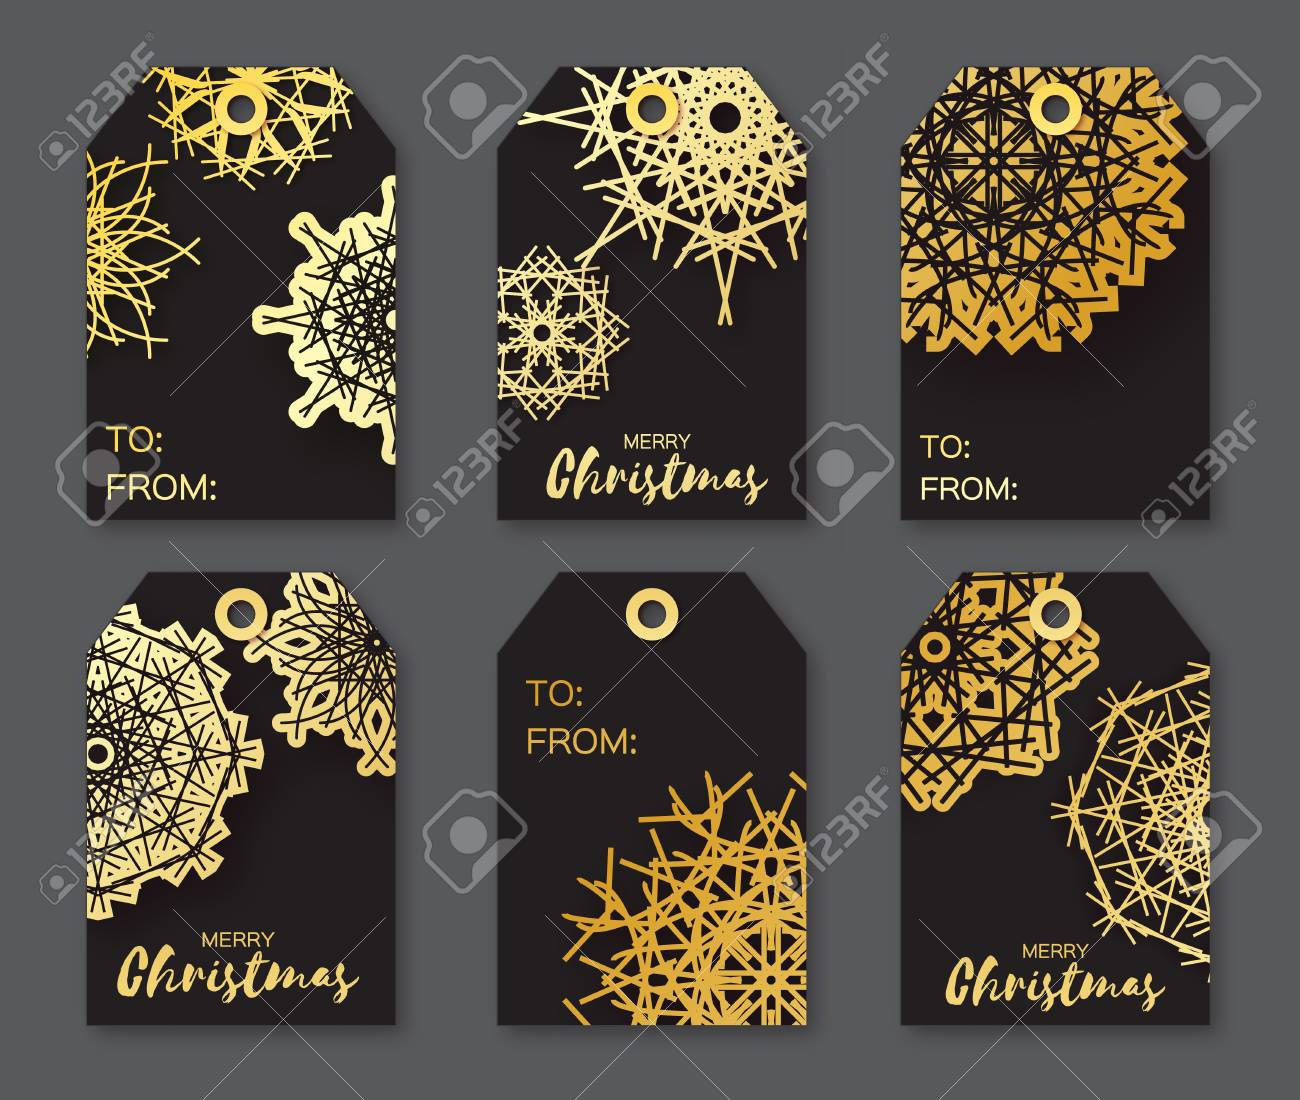 golden foil christmas labels festive collection of black background ready to use